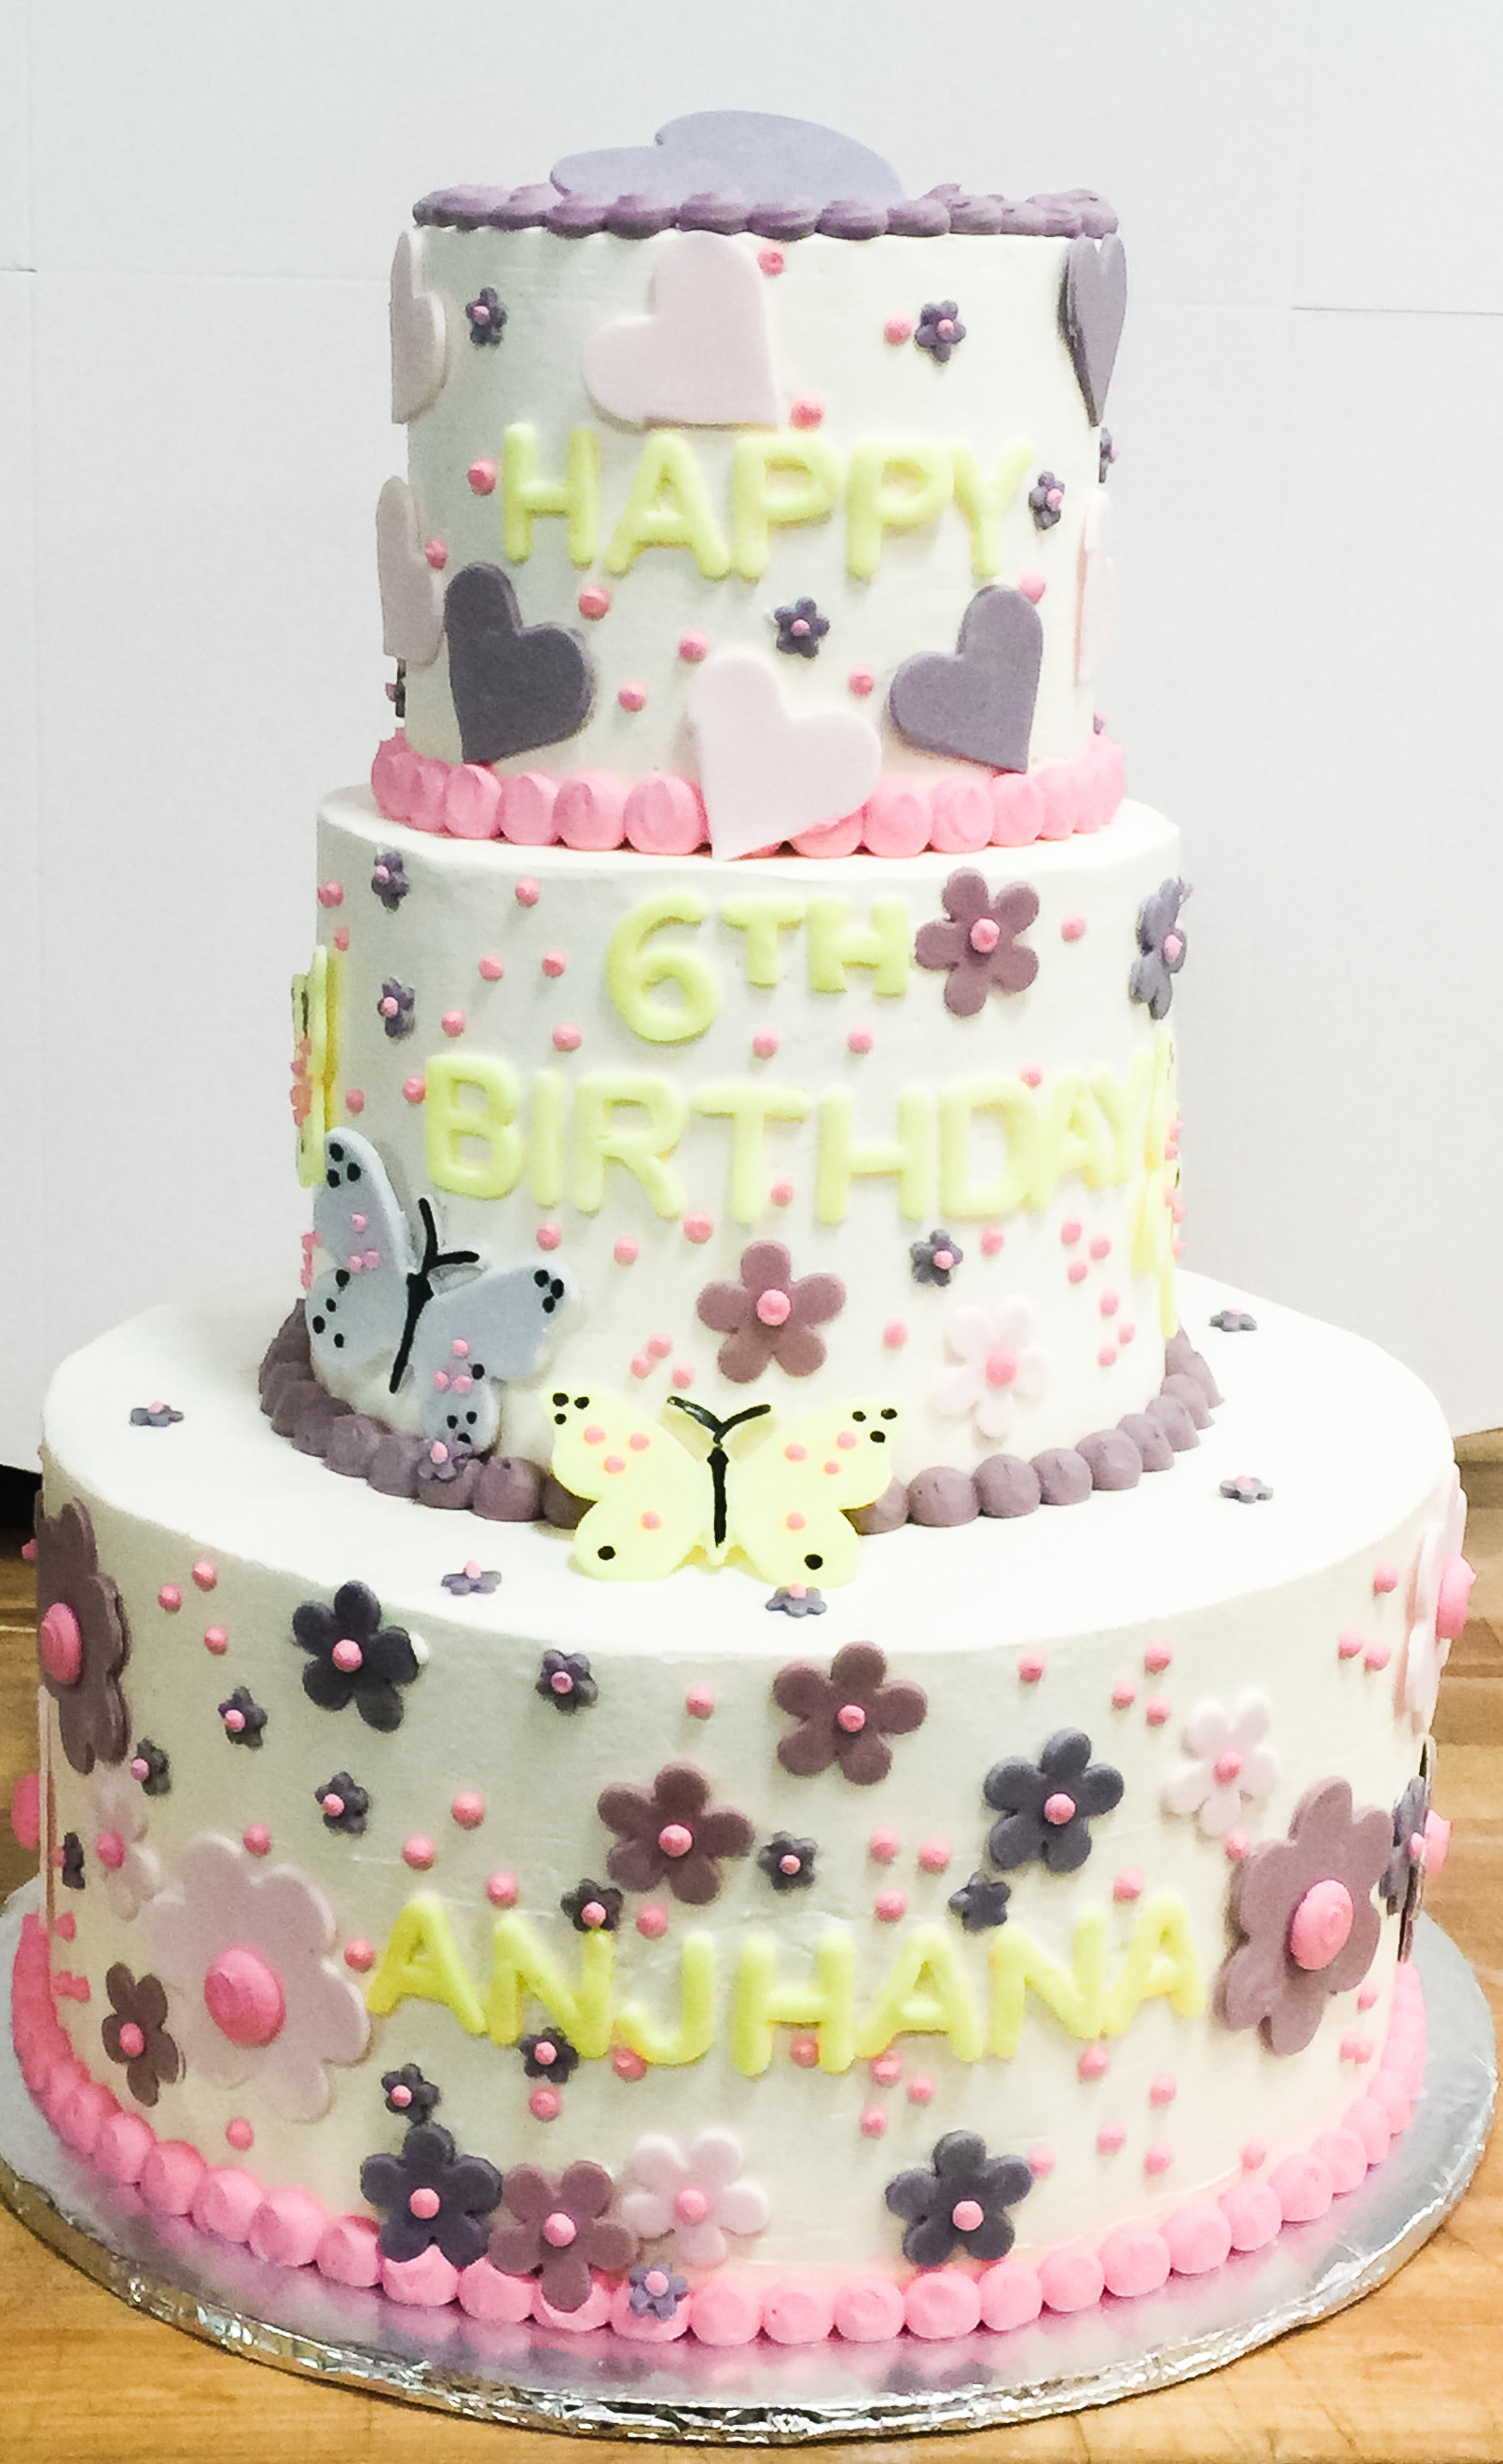 Specialy Cakes Marie Shannon Confections Ventura CA-12.jpg